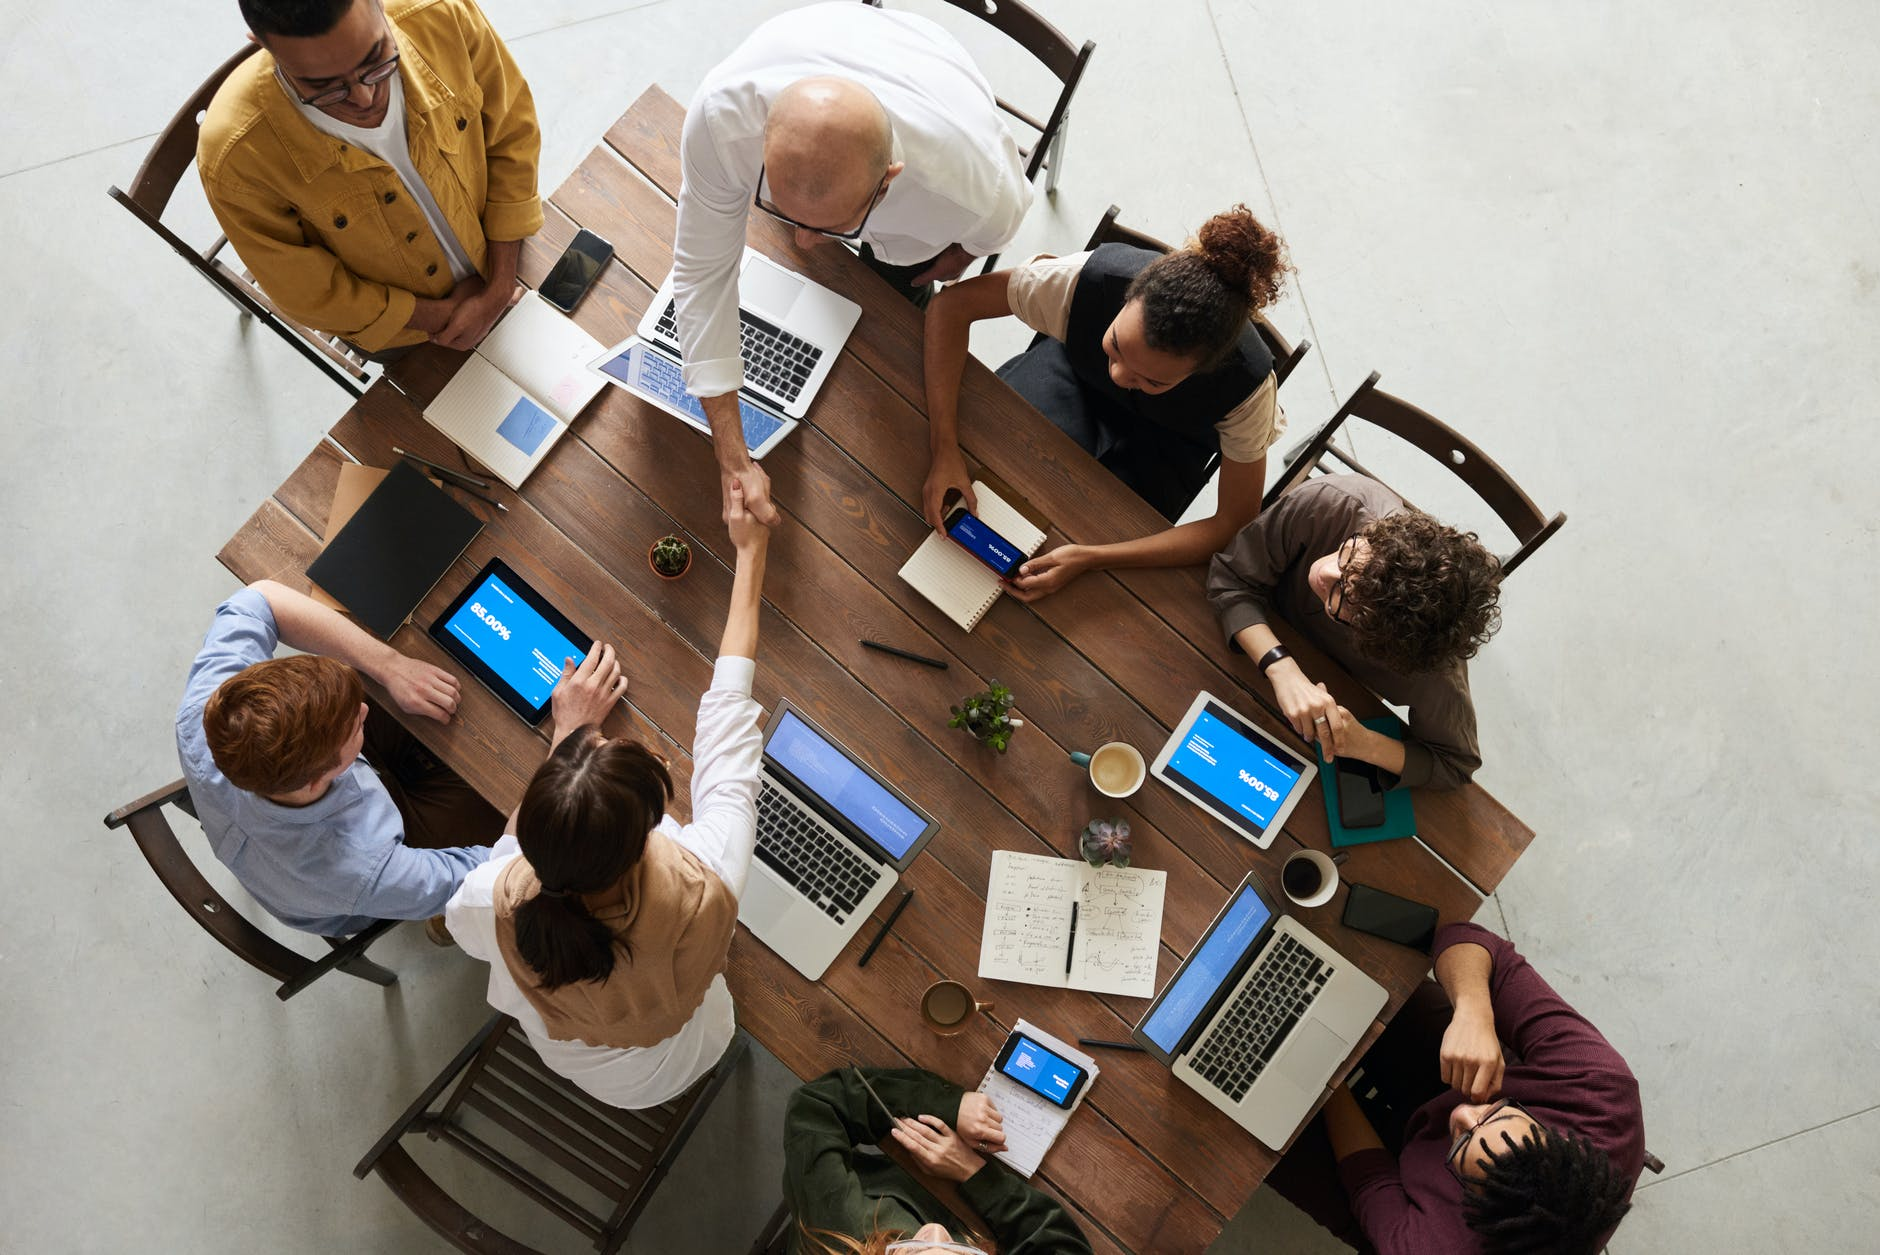 8 people using laptops and sitting around a table for professional collaboration